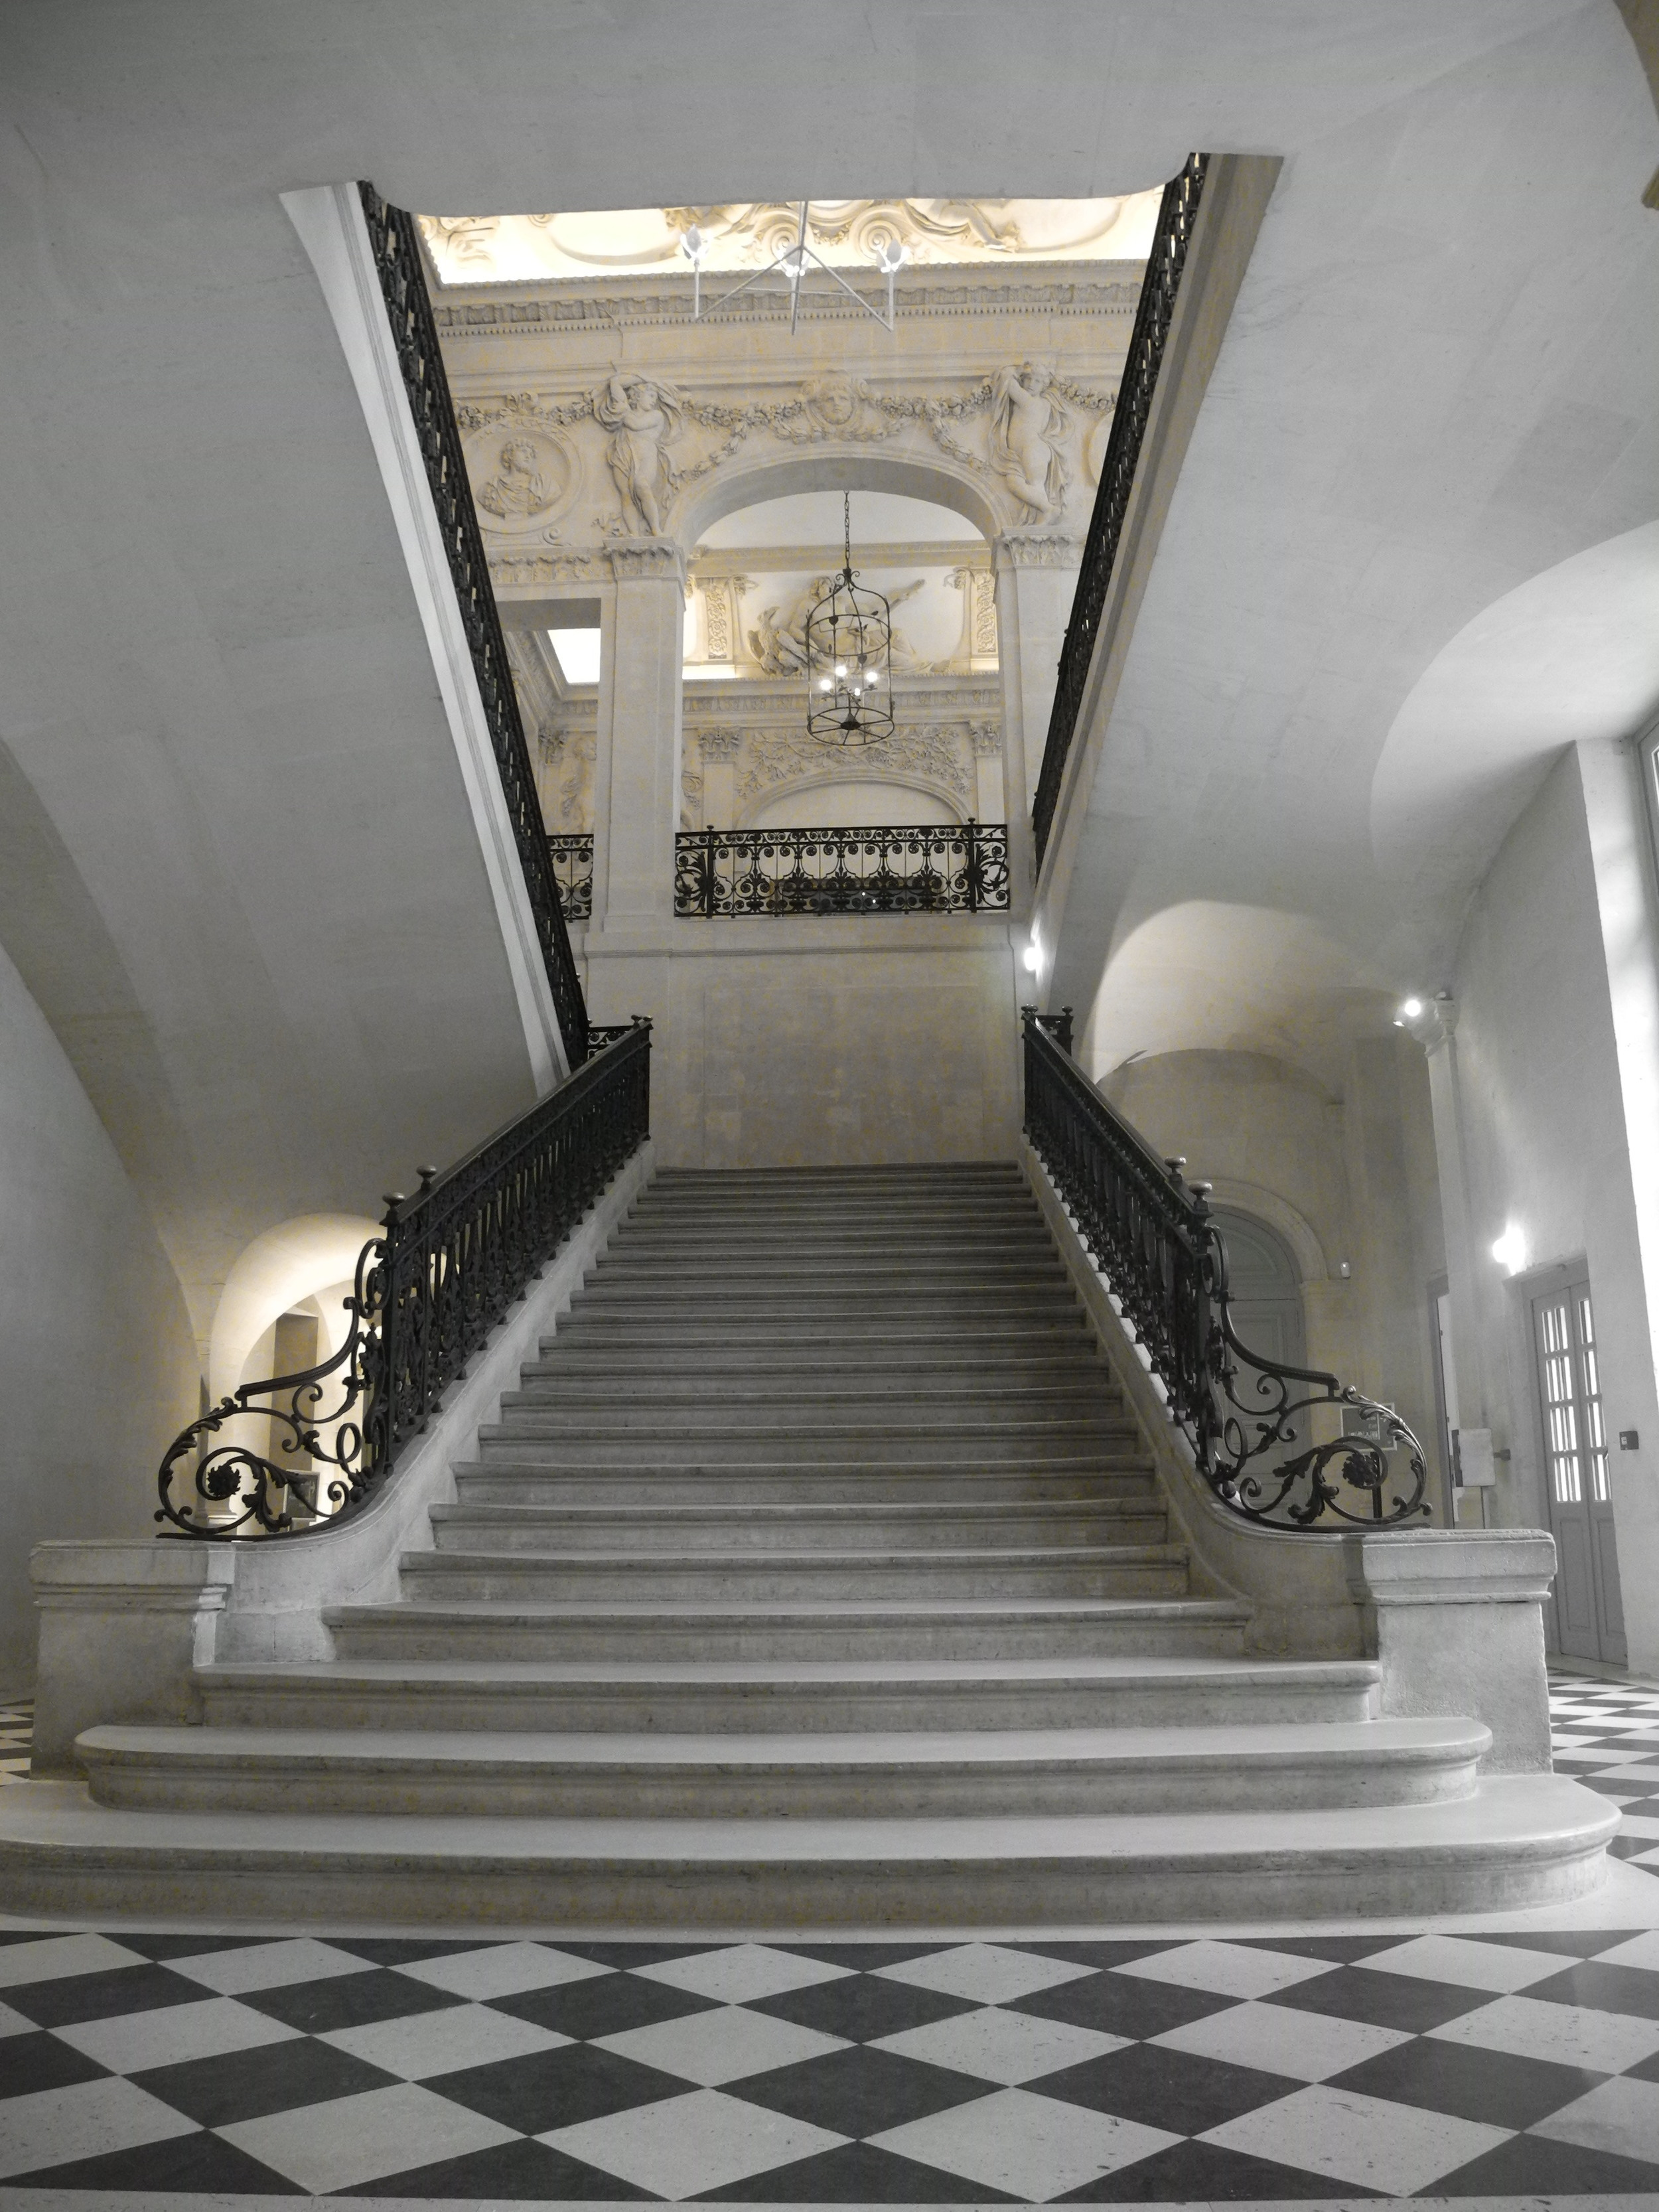 The grand staircase. It's difficult to imagine that this was somebody's home centuries ago.